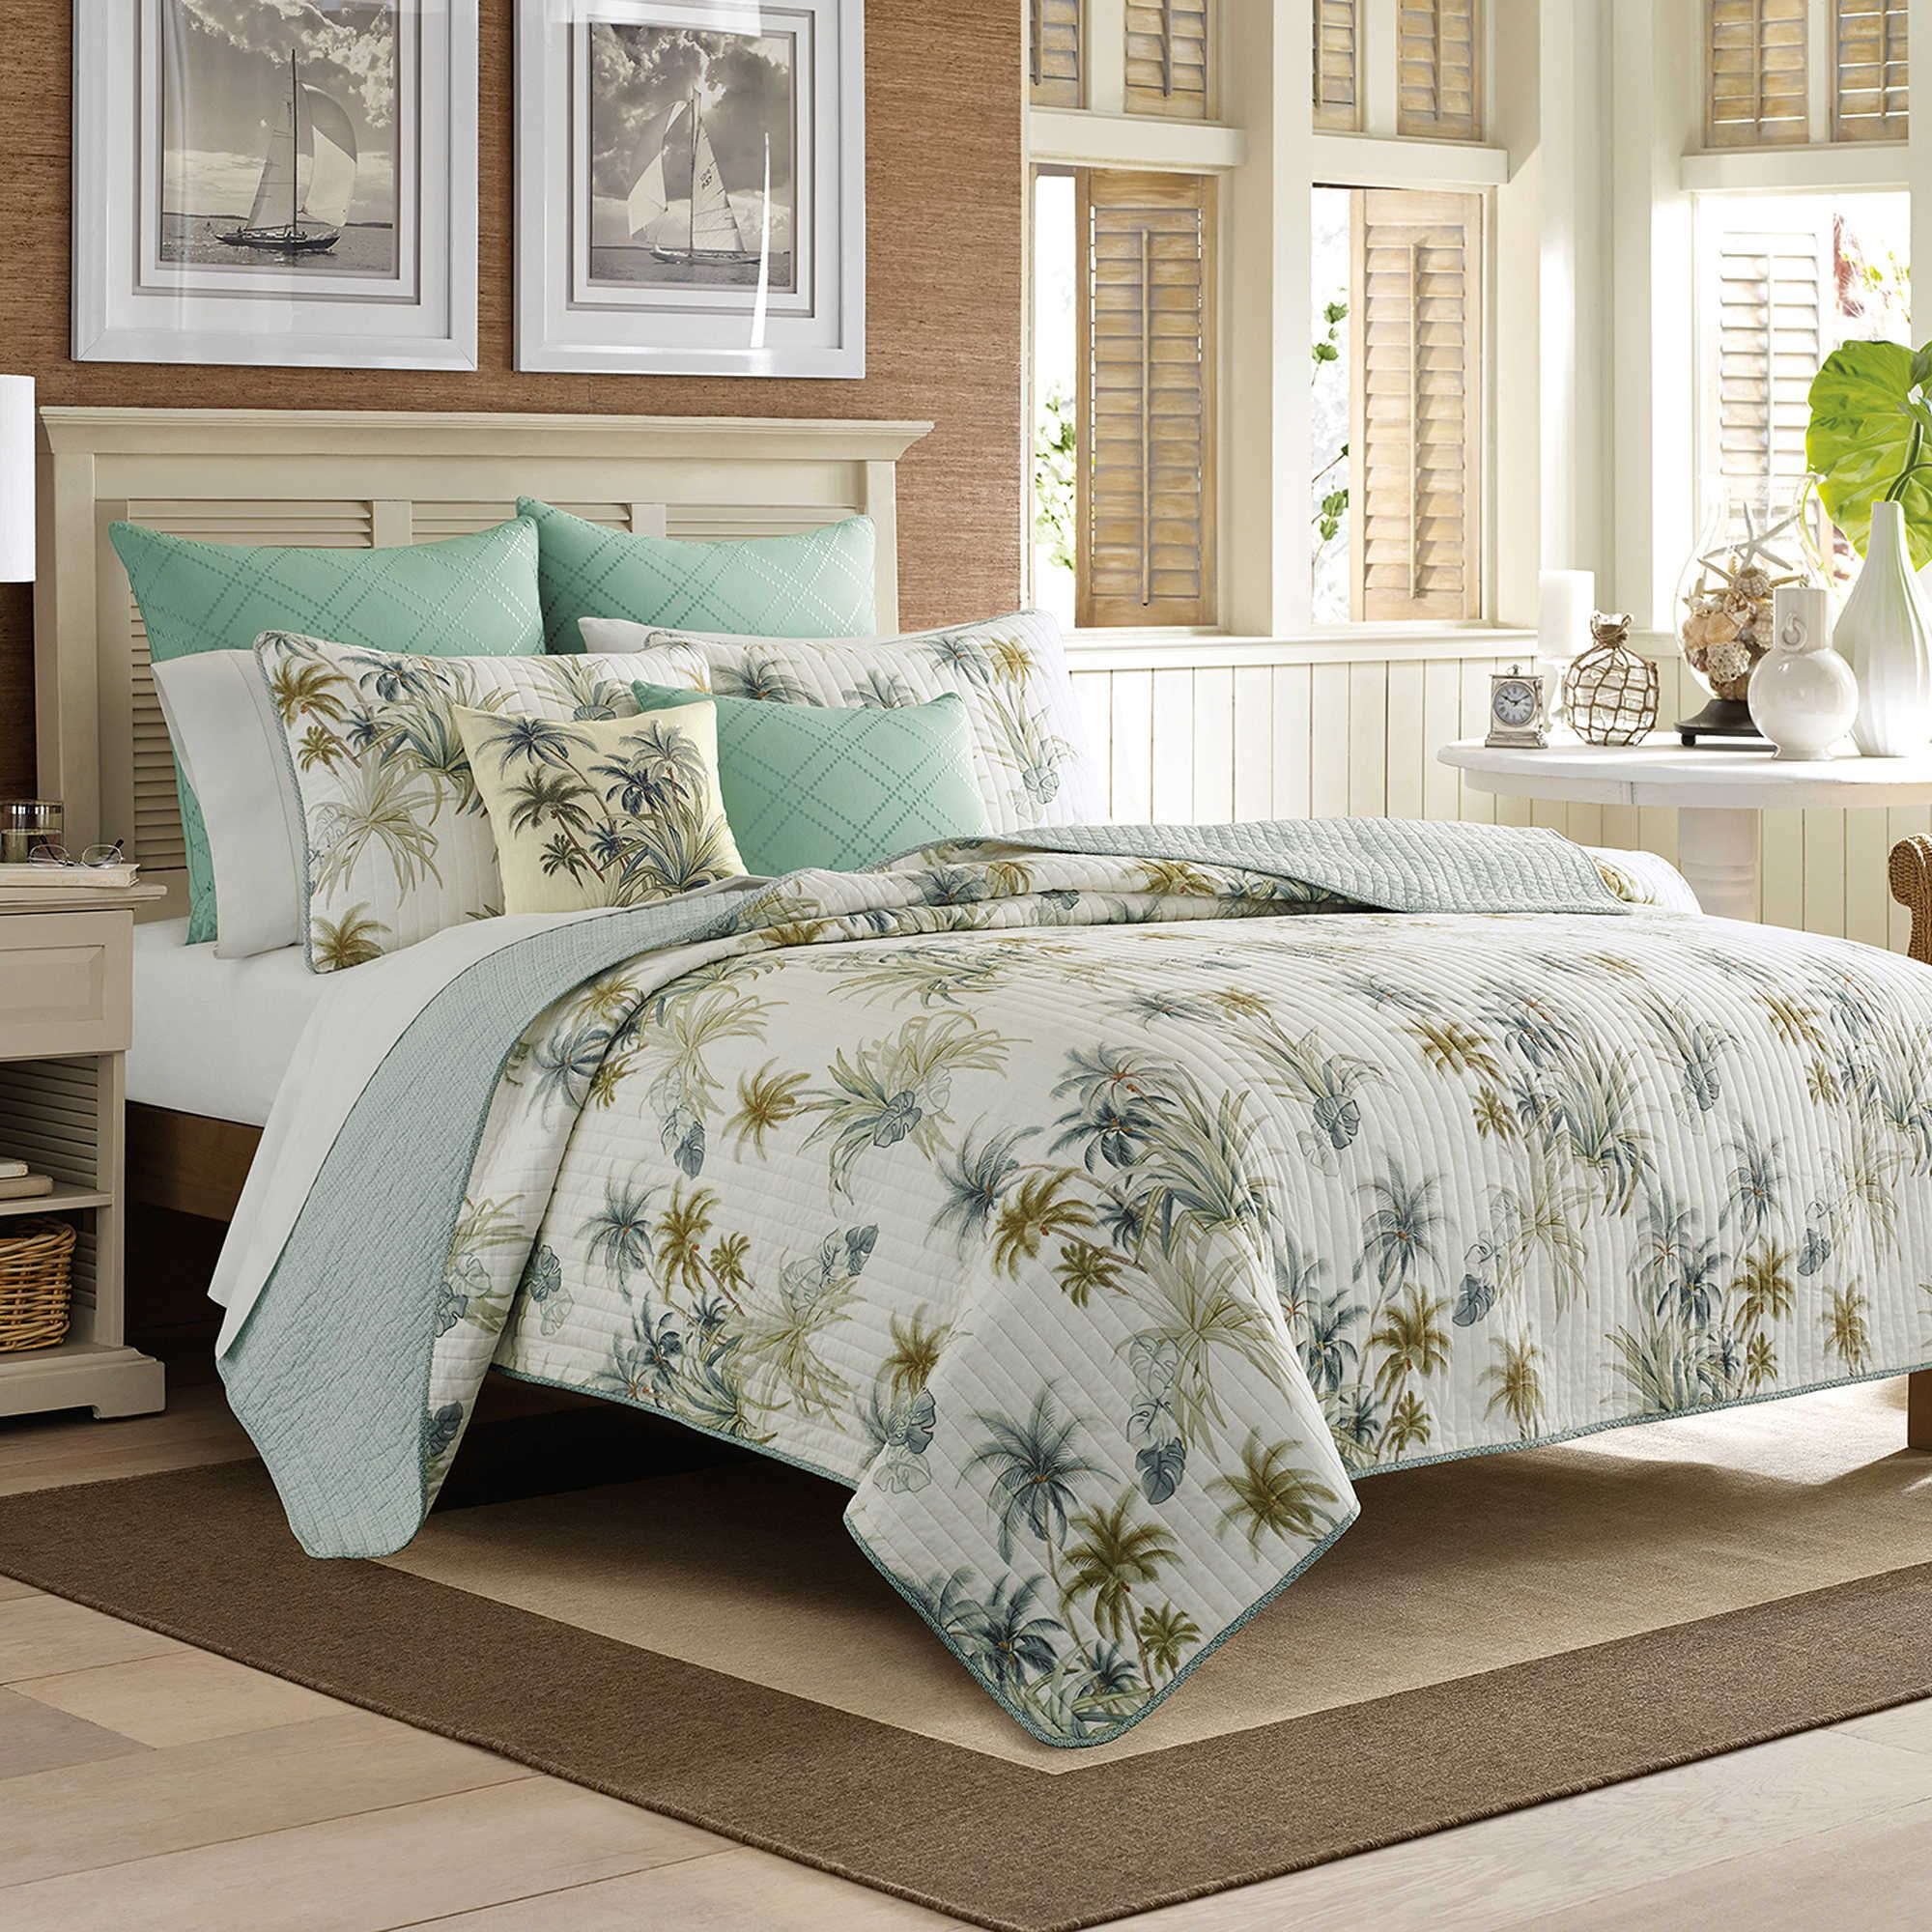 Tommy Bahama Serenity Palms Quilt Arianne And John Pinterest Tommy Bahama And Bedding Sets